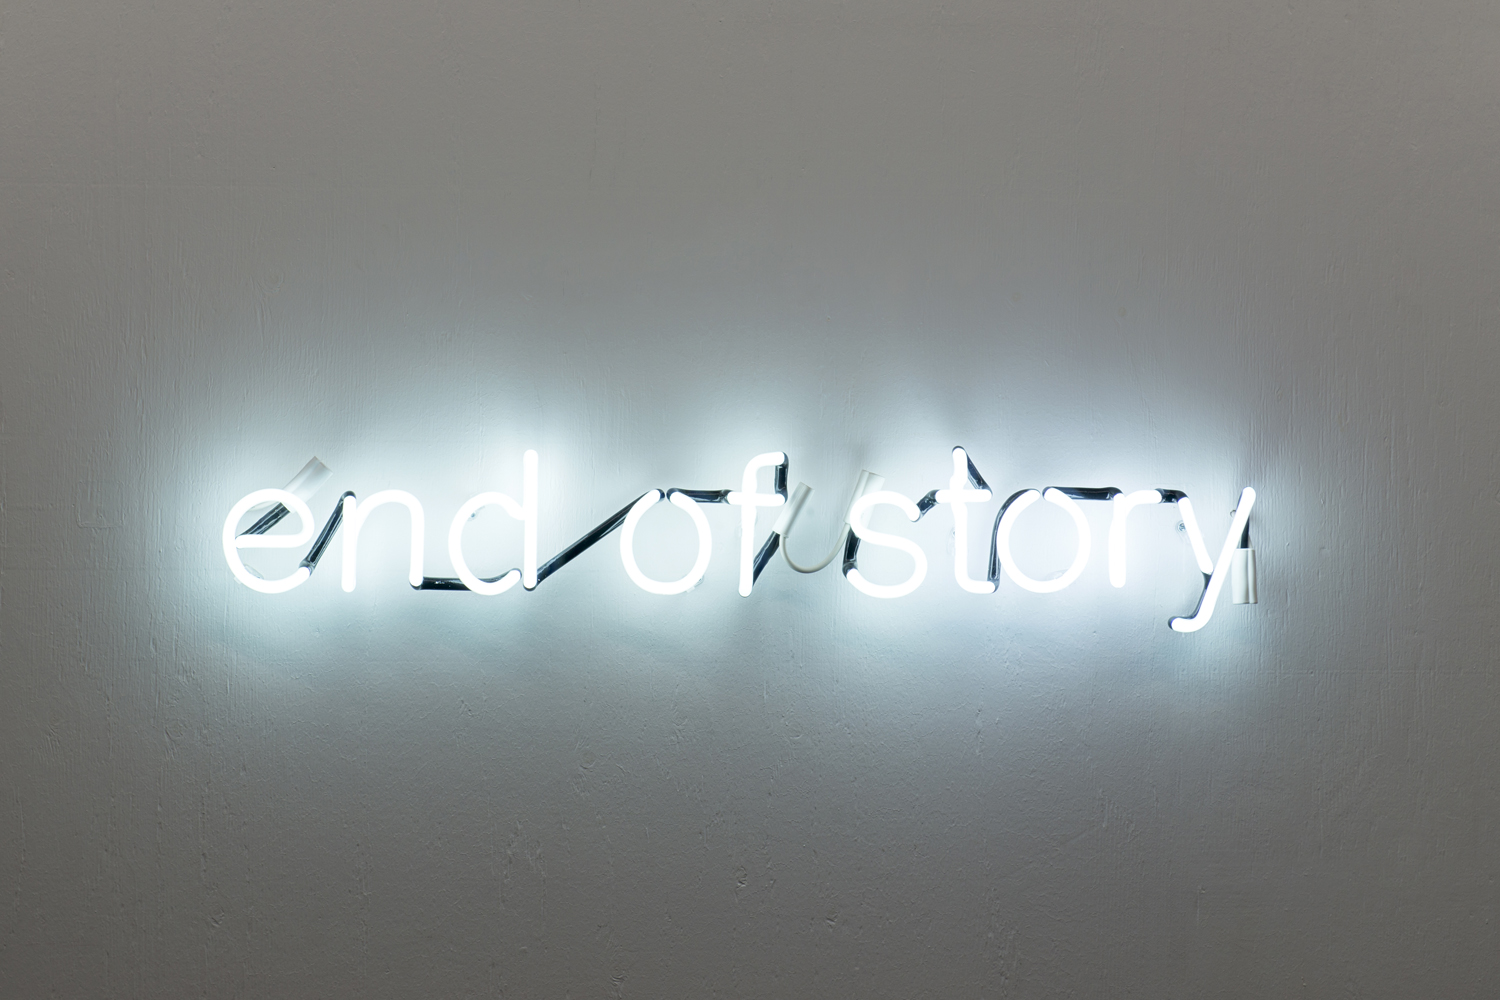 Tim Etchells, End of Story, 2012. Neon. 95 x 17.5 cm. Edition of 3 (1 AP). Photographer: Nici Jost.